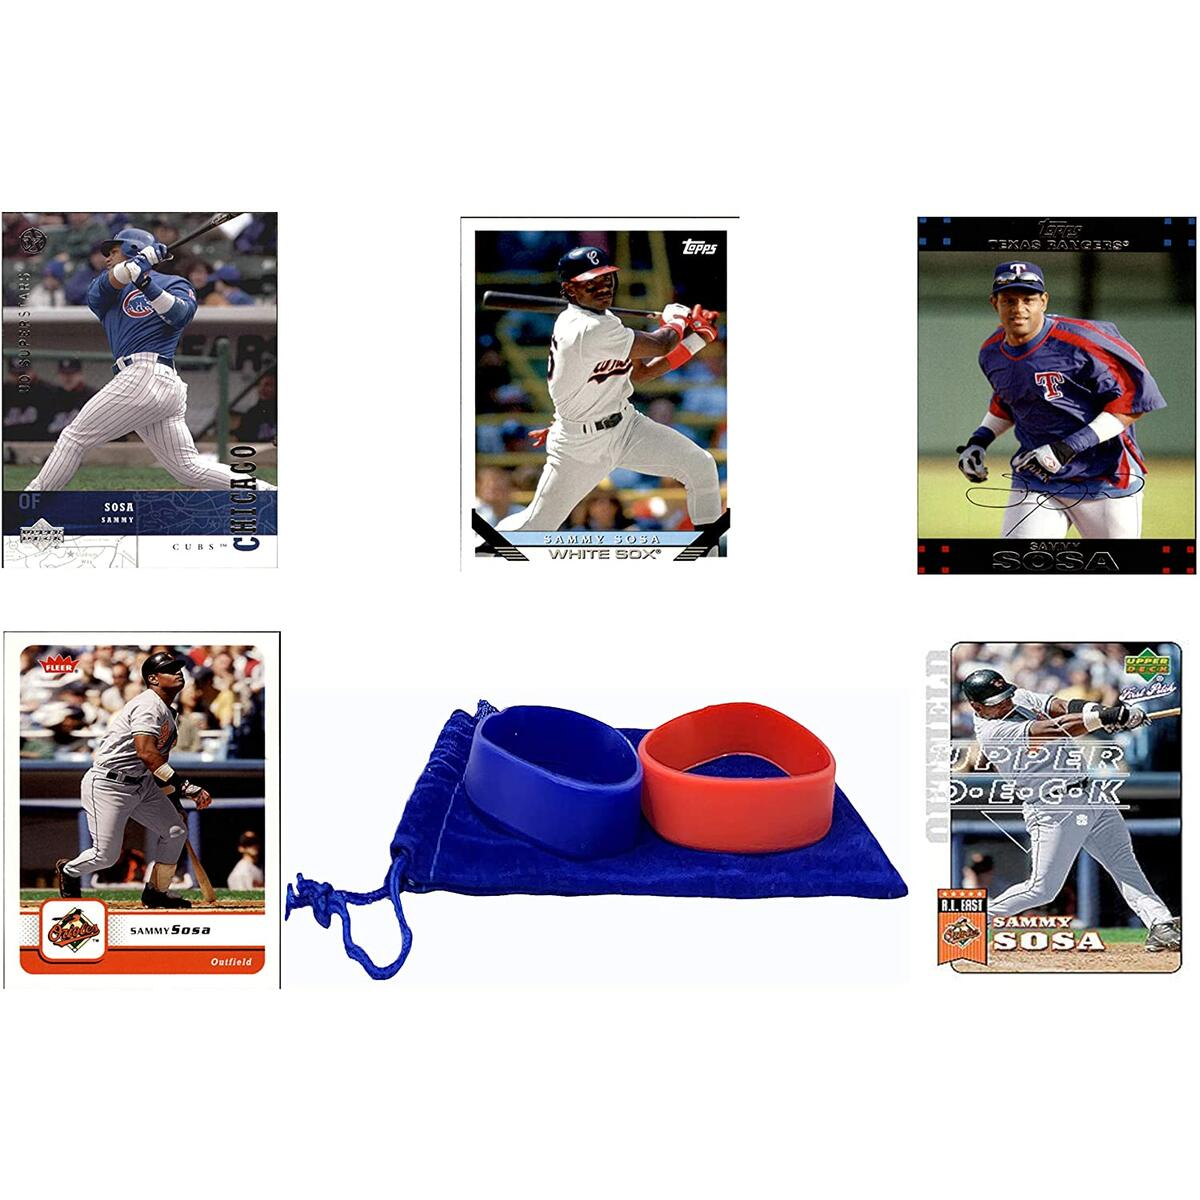 Sammy Sosa Baseball Cards (5) ASSORTED Chicago Cubs Trading Card and Wristbands Gift Bundle